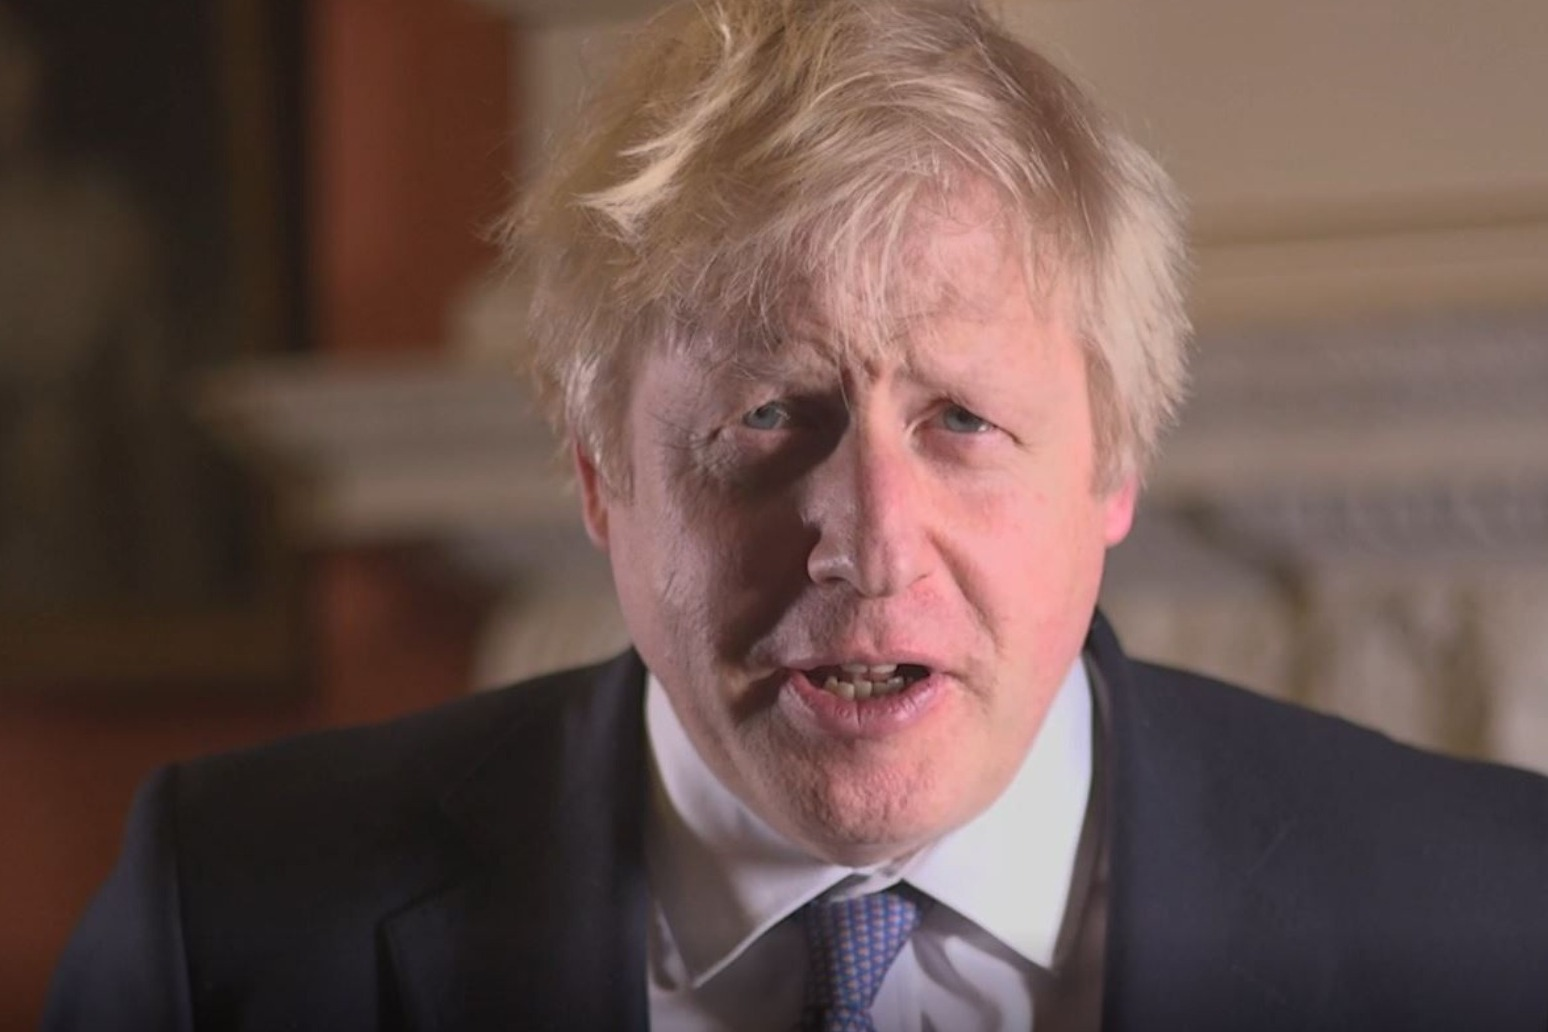 JOHNSON HAILS A DECADE OF \'PROSPERITY AND OPPORTUNITY\' AFTER BREXIT